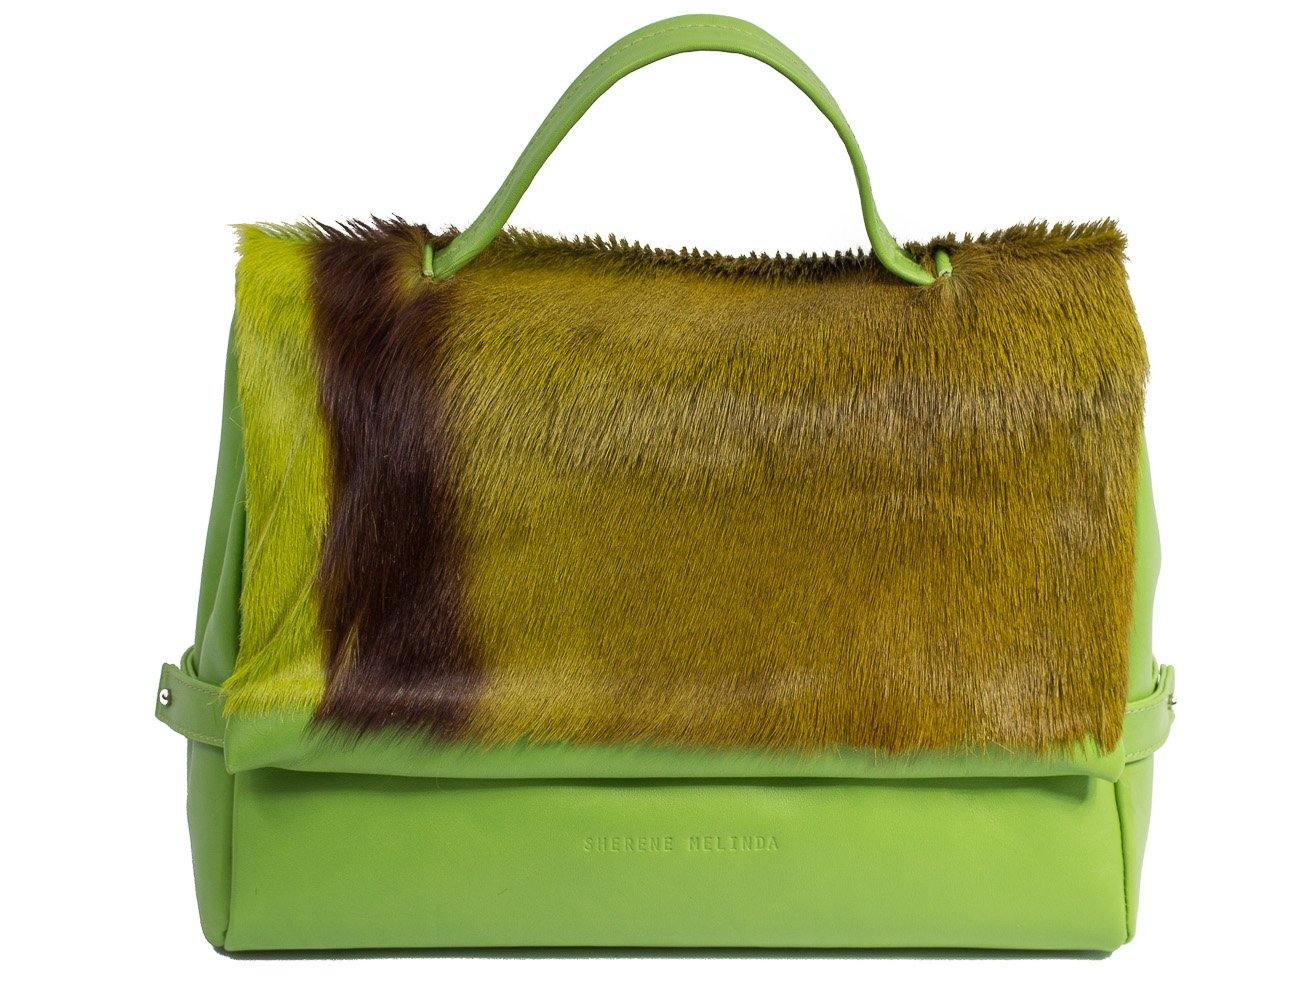 sherene melinda springbok hair-on-hide lime green leather smith tote bag Stripe front